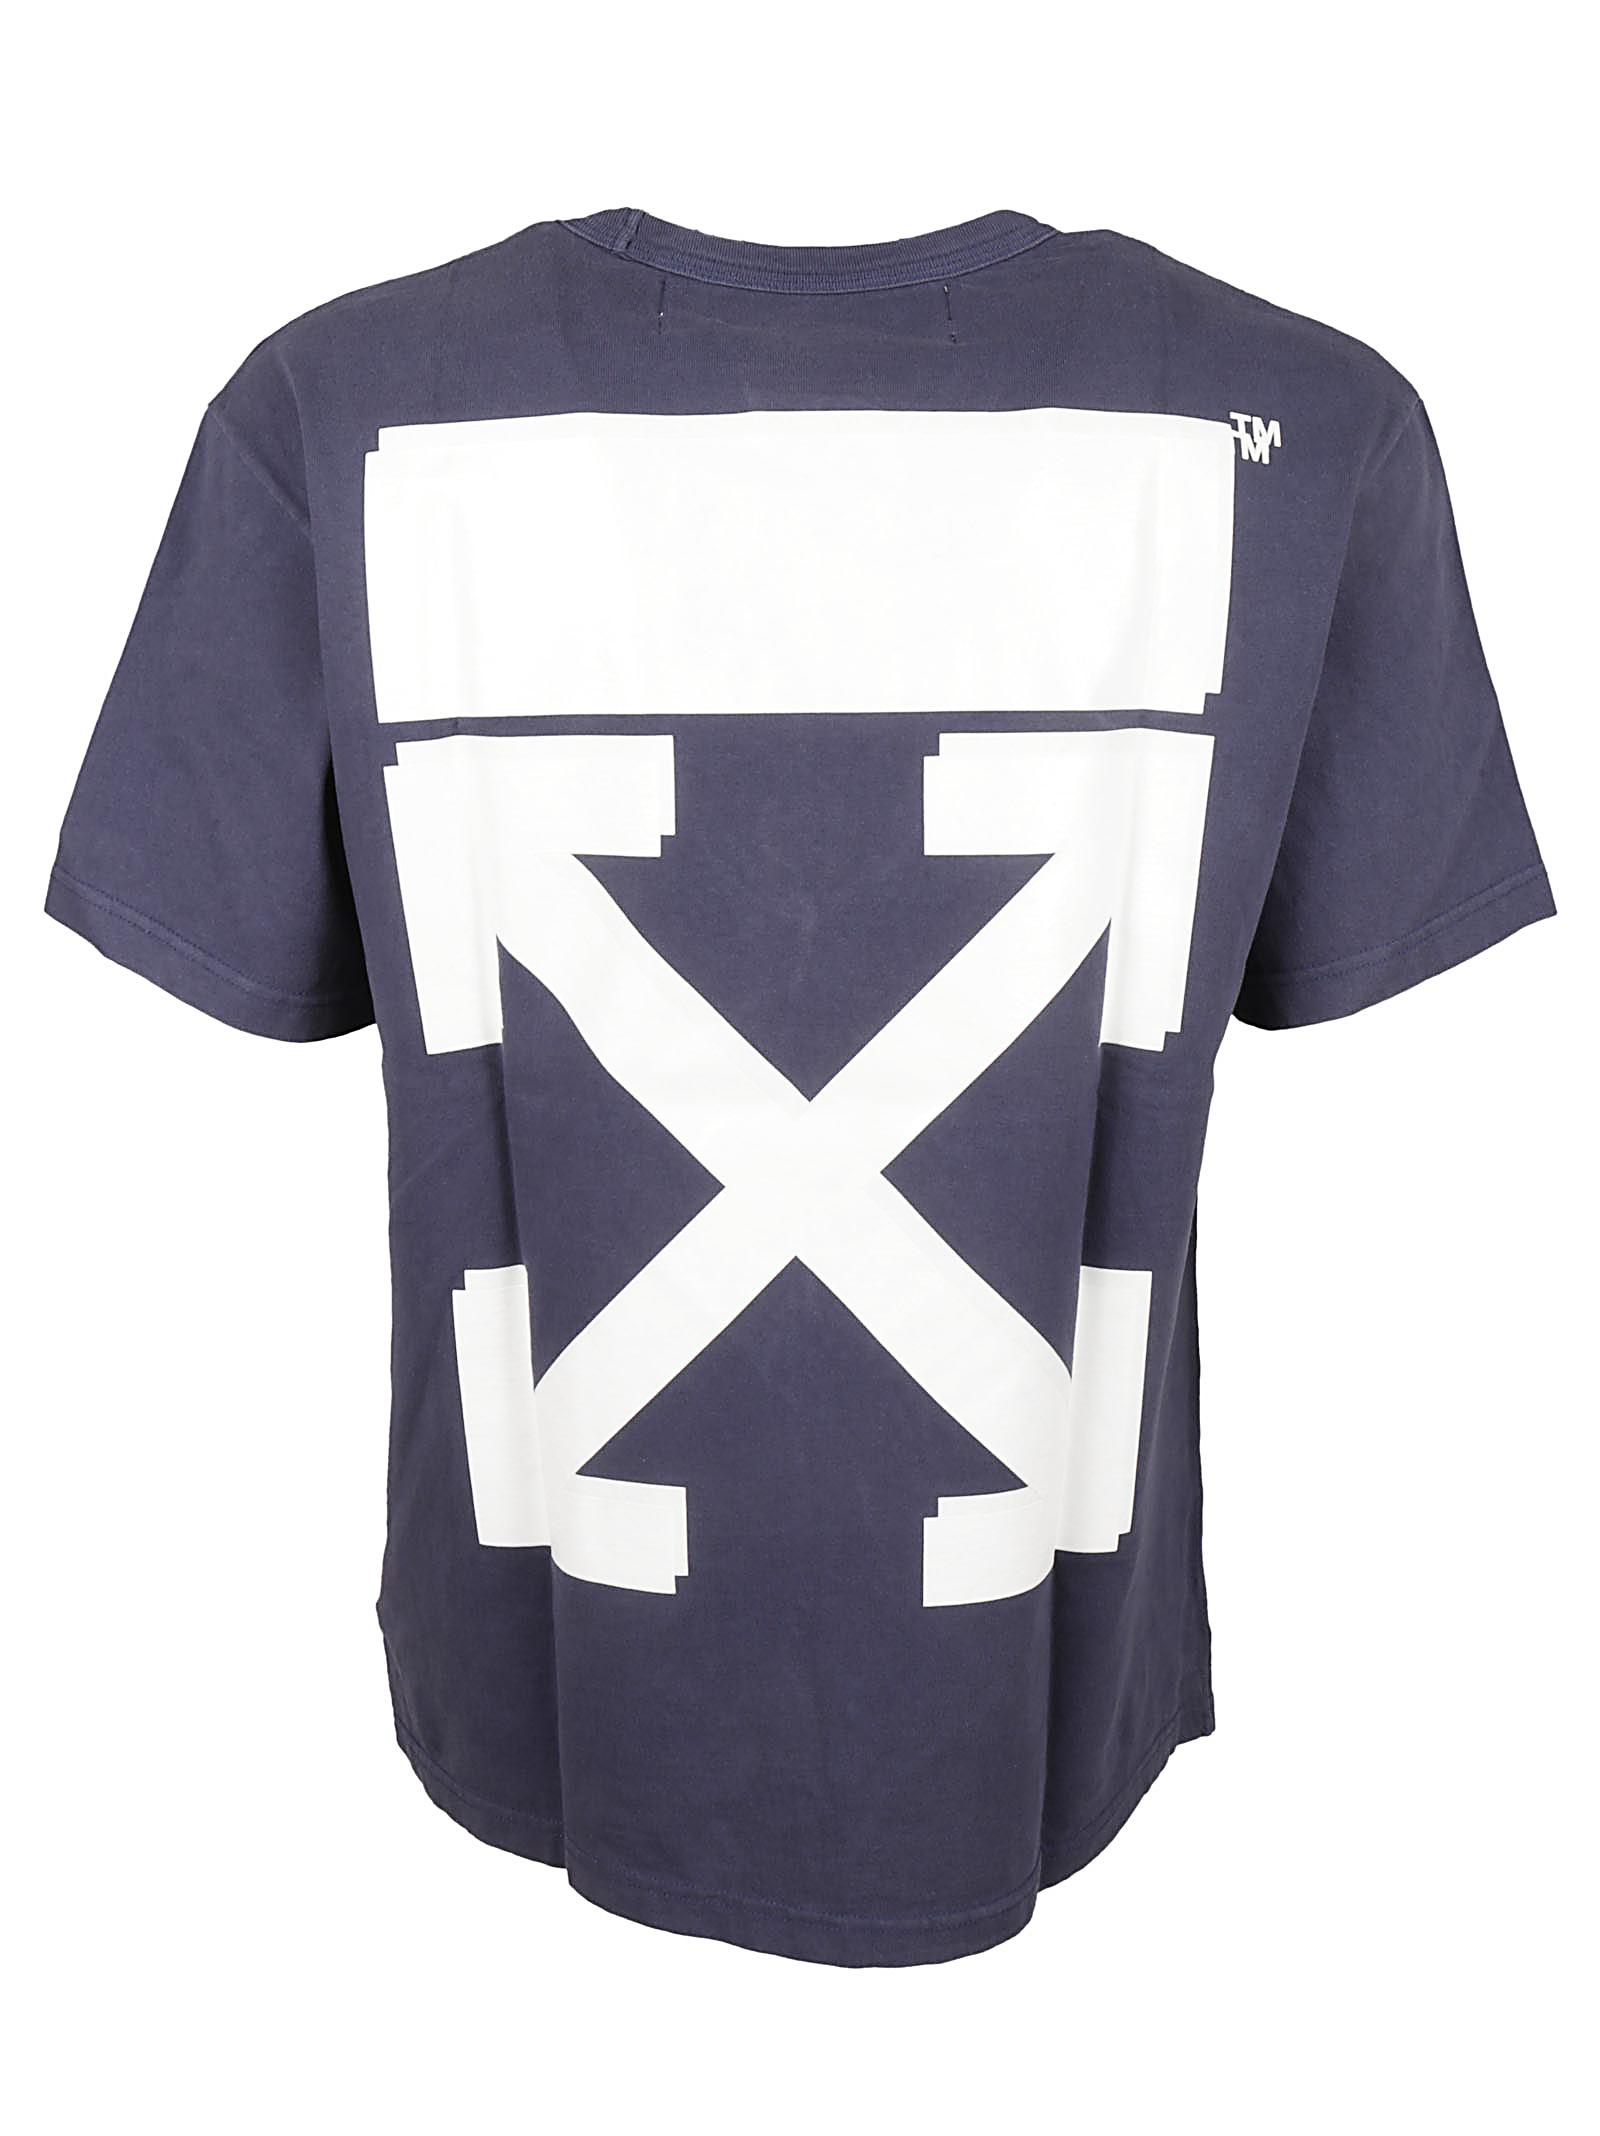 5c17078d Off-White c/o Virgil Abloh Champion Tee Dusty Blue White in Blue for ...